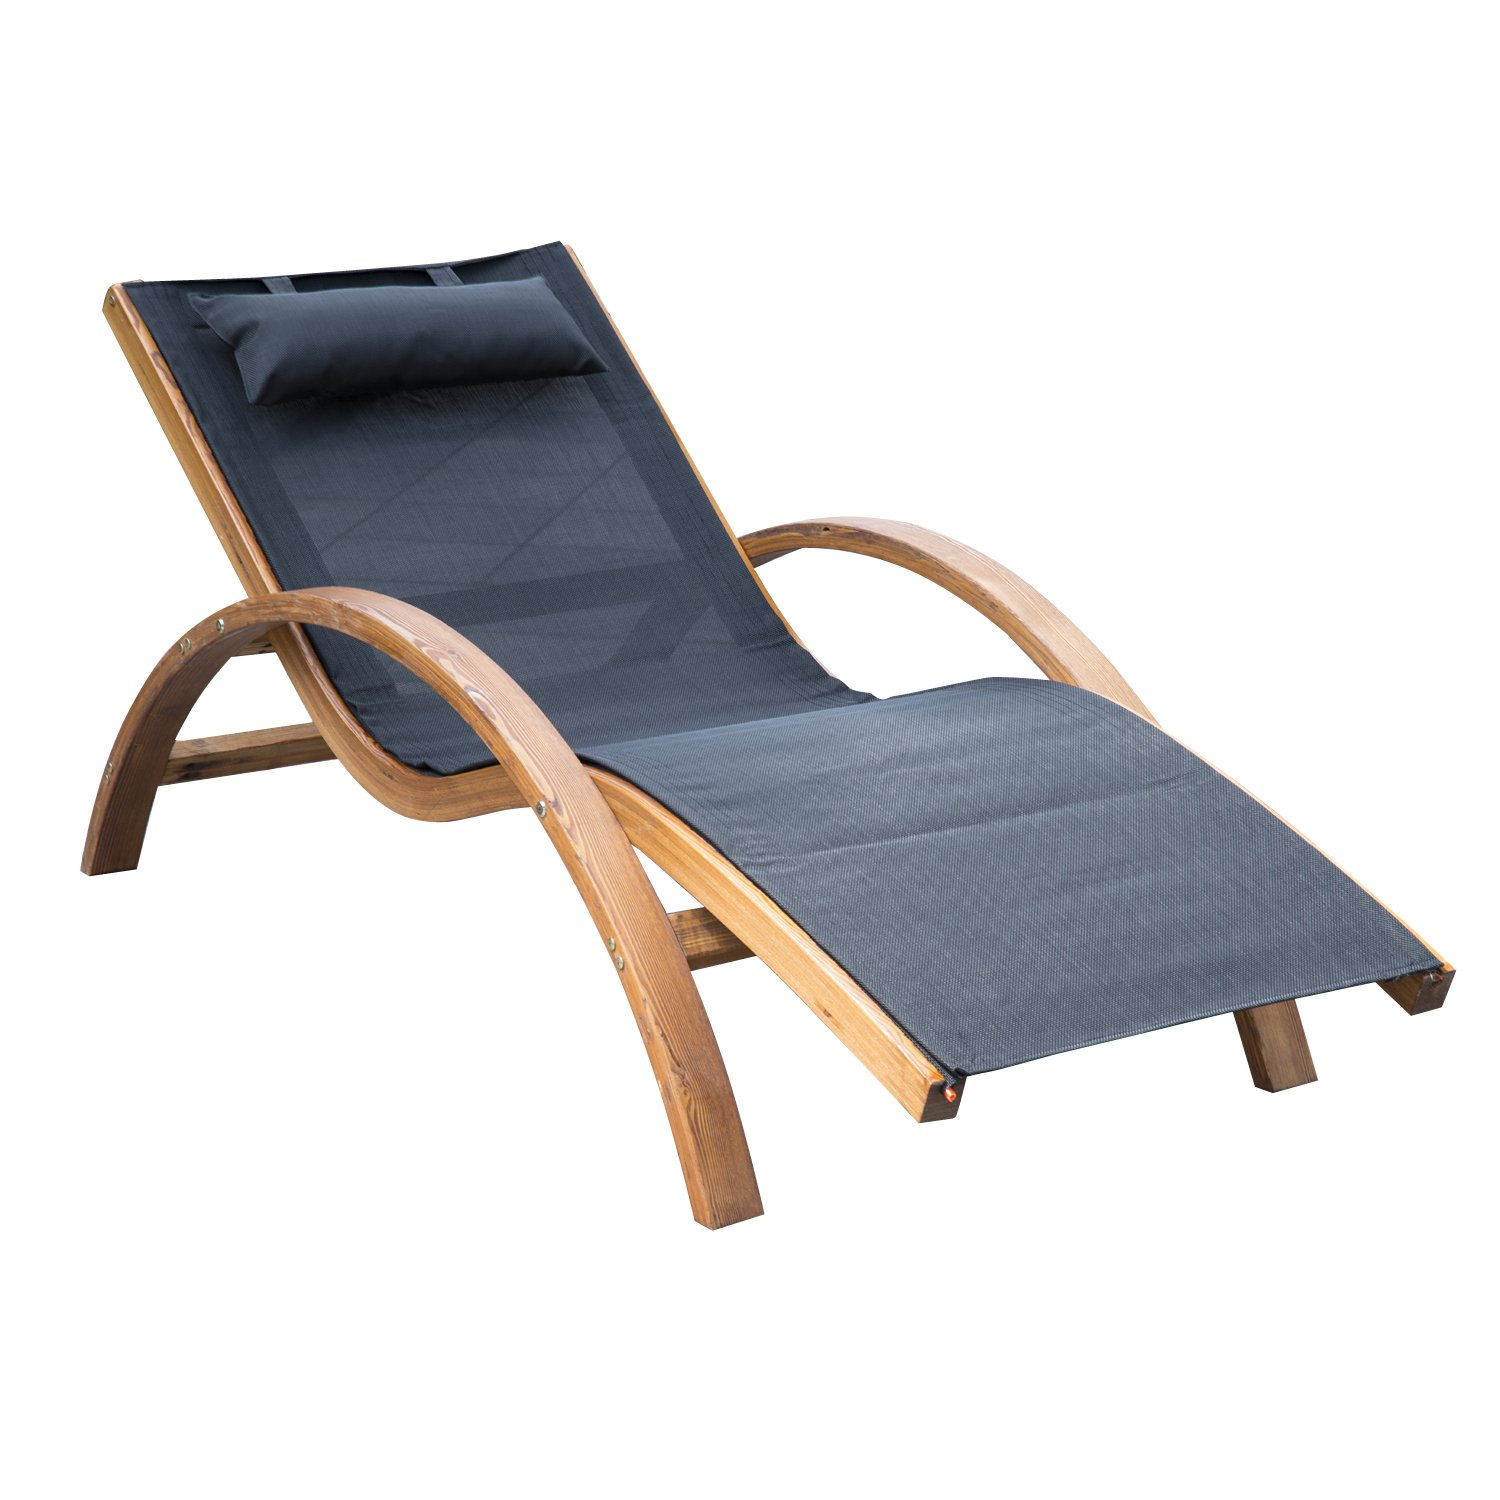 Top 10 Best Outdoor Reclining Lounge Chair For Pool And